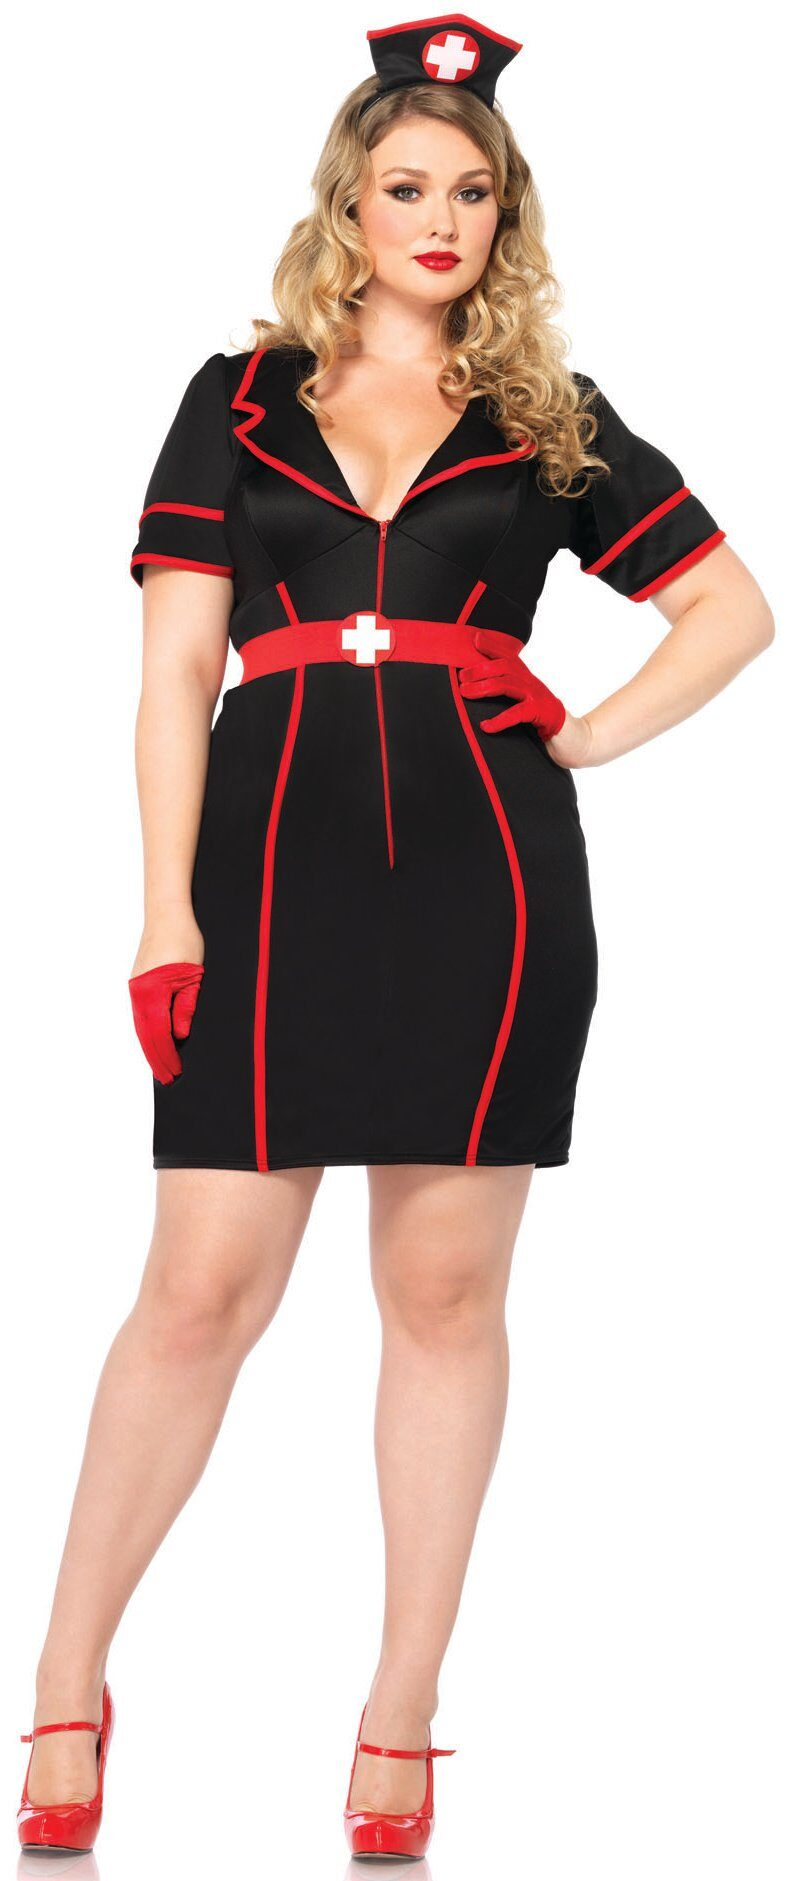 Naughty sexy holloween costumes plus size